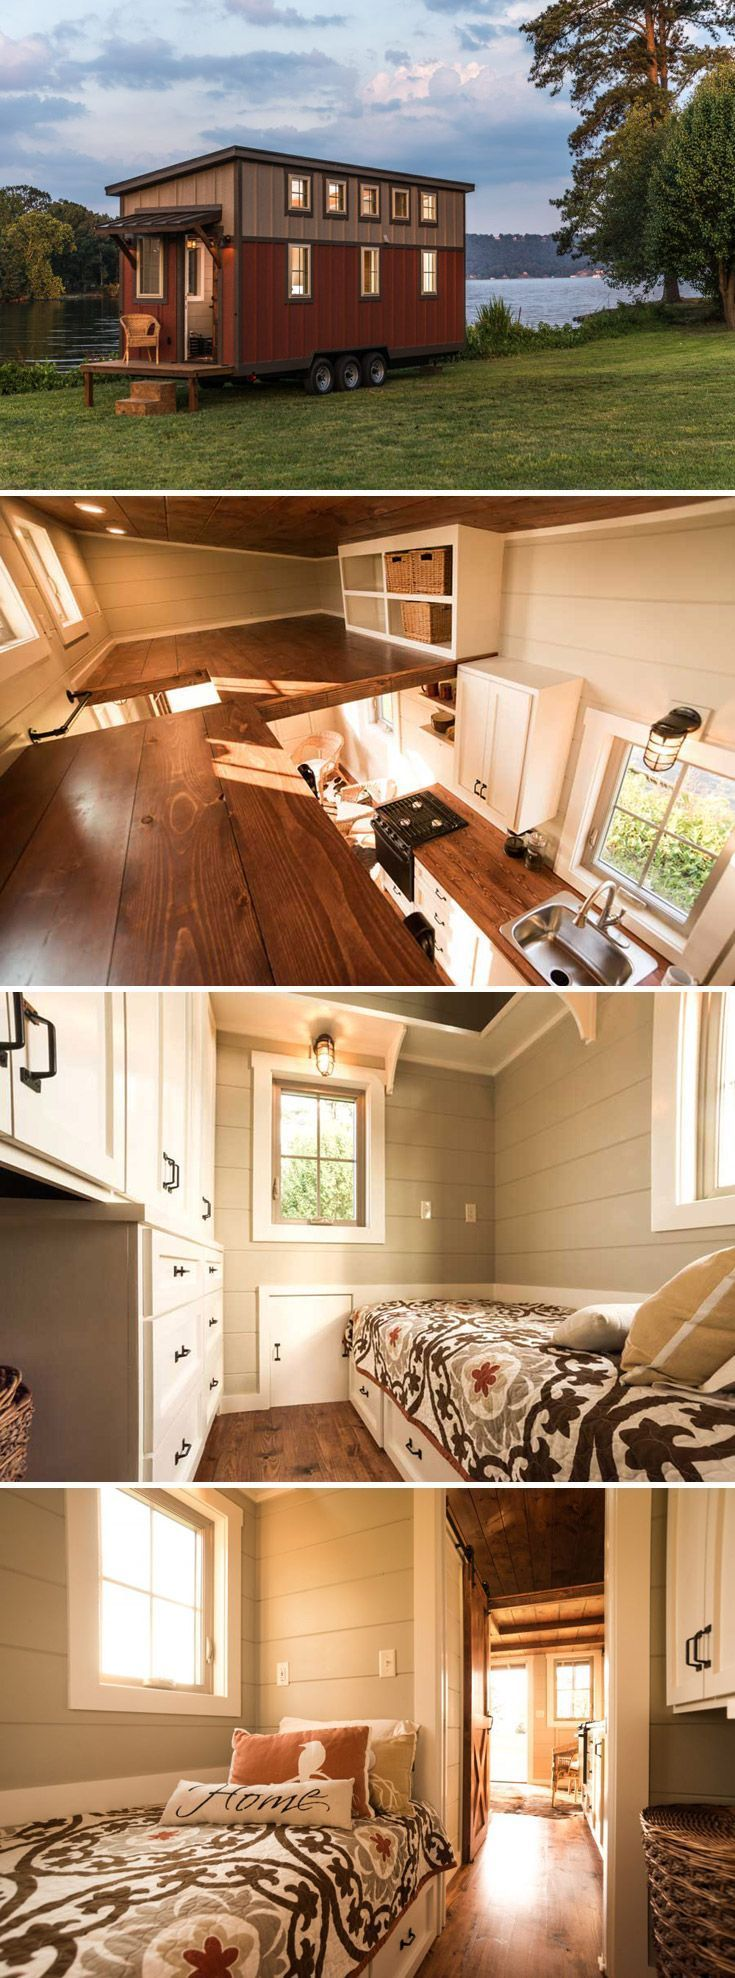 181 best Tiny Houses Ideas images on Pinterest | Spaces, Projects ...